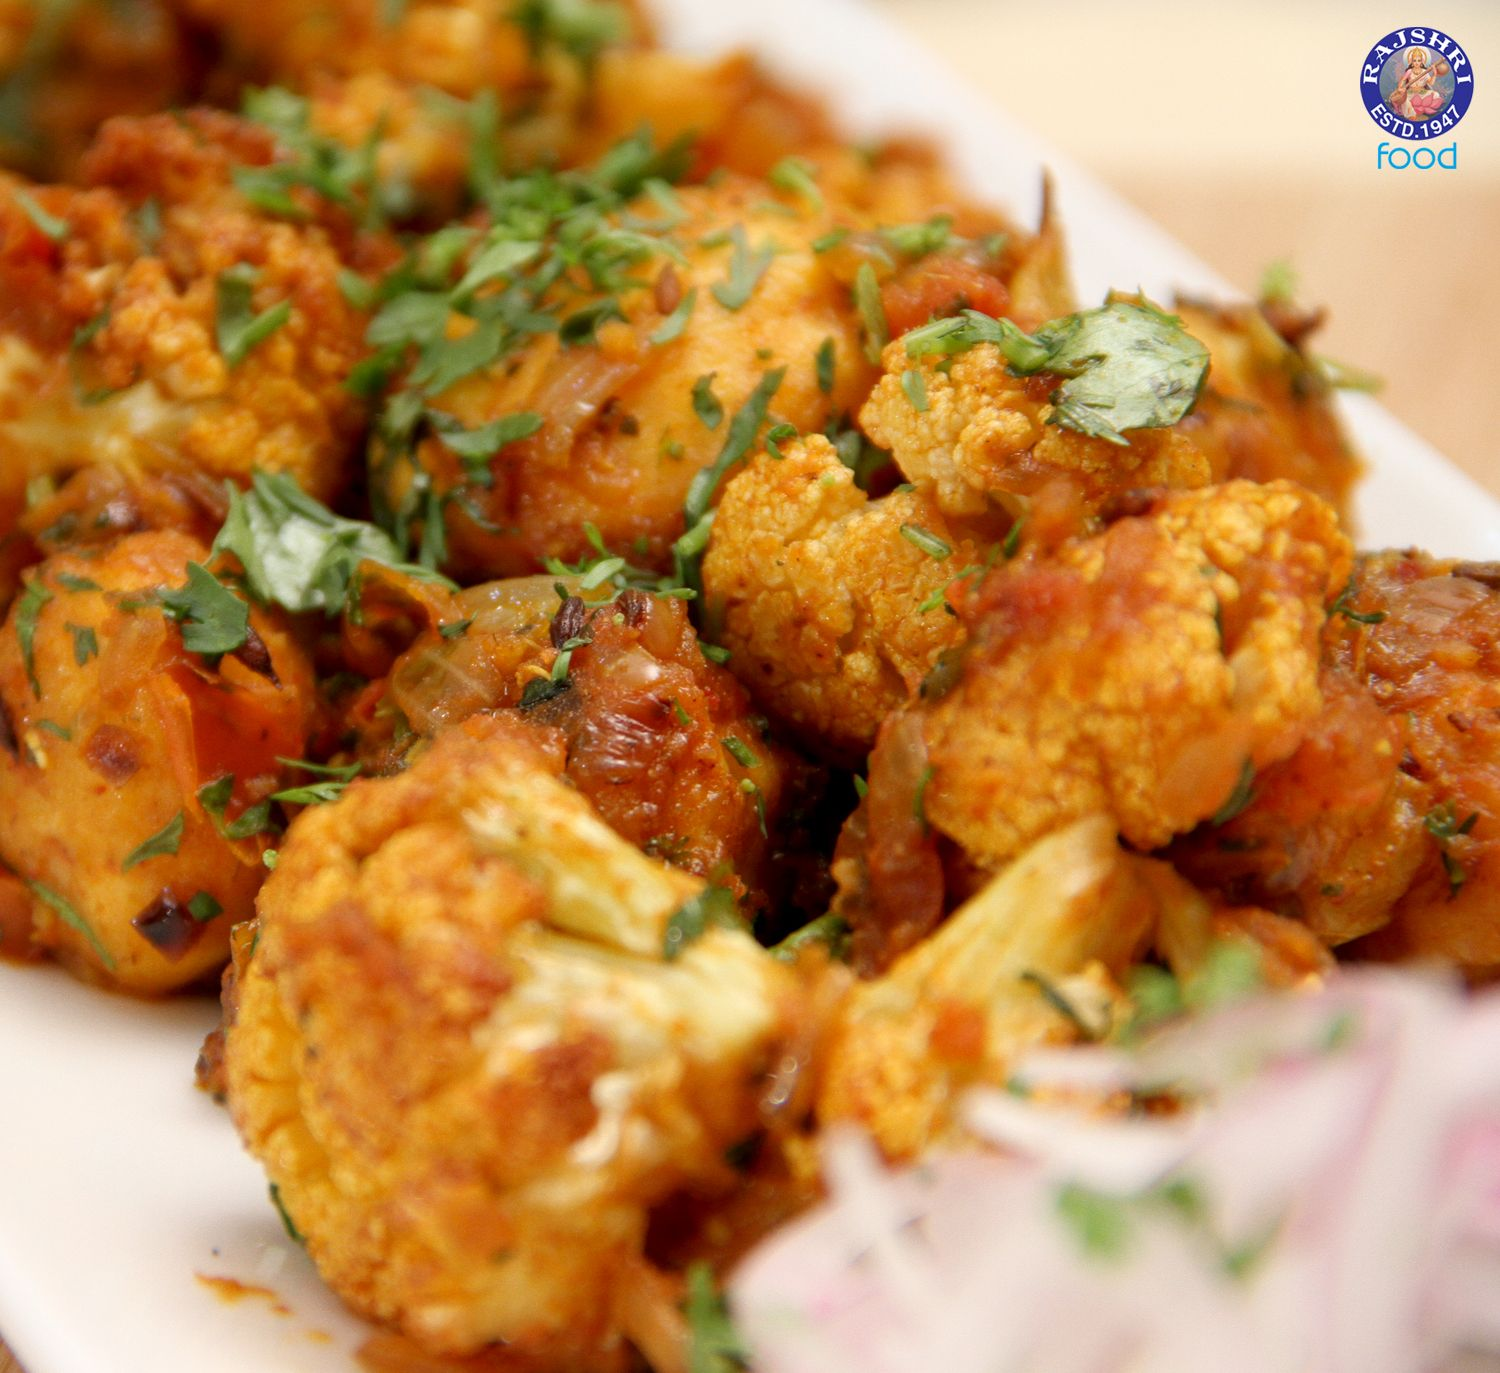 Aloo gobi potato cauliflower curry indian vegetarian recipe aloo gobi potato cauliflower curry indian vegetarian recipe forumfinder Gallery